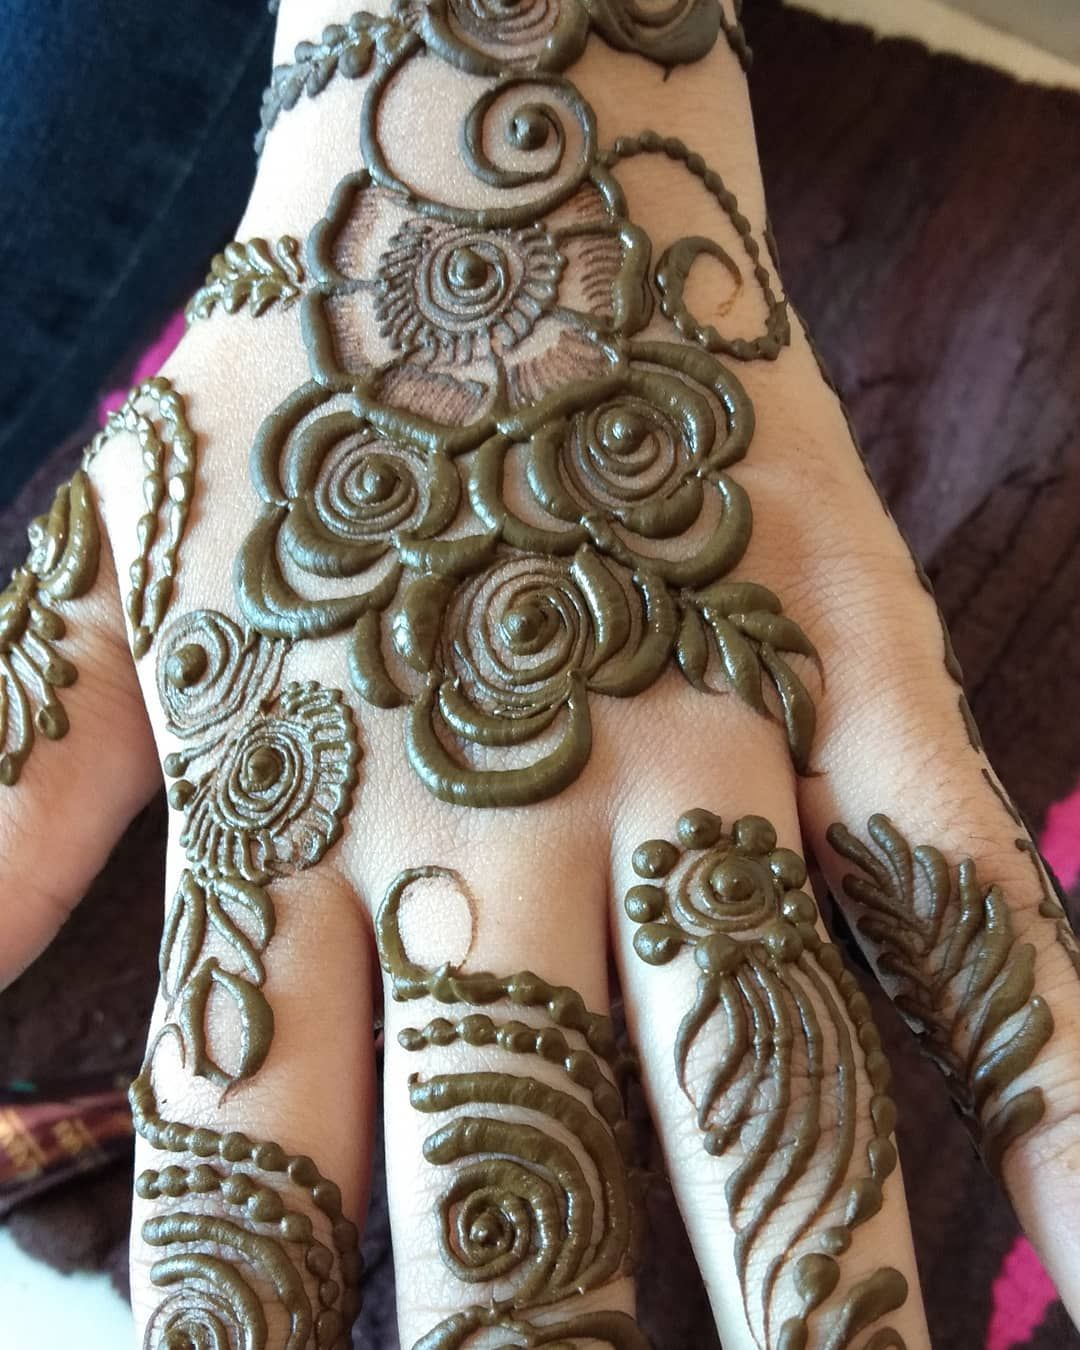 Pin By Ahlam On Henna Designs Henna Patterns Hand Henna Henna Designs